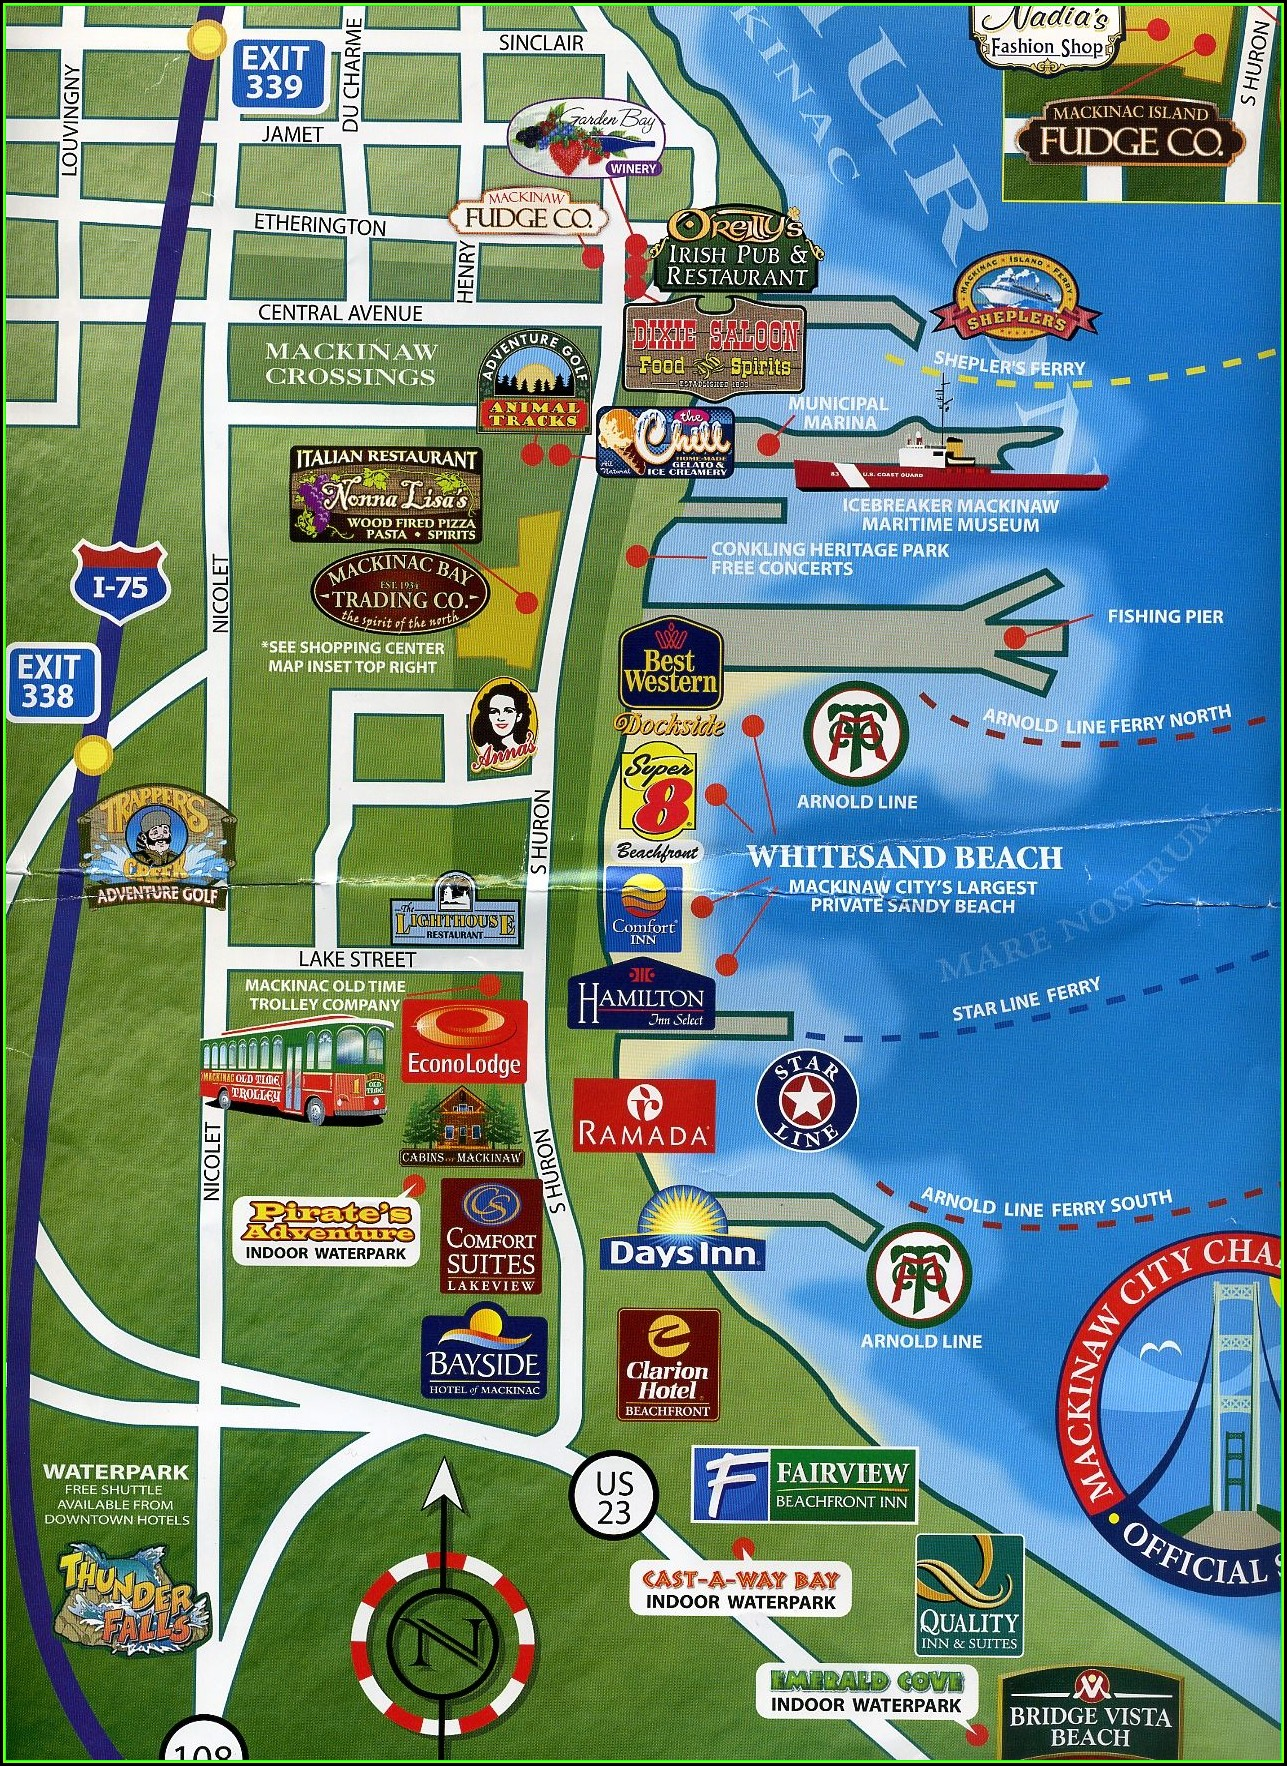 Mackinac Island Hotels Map